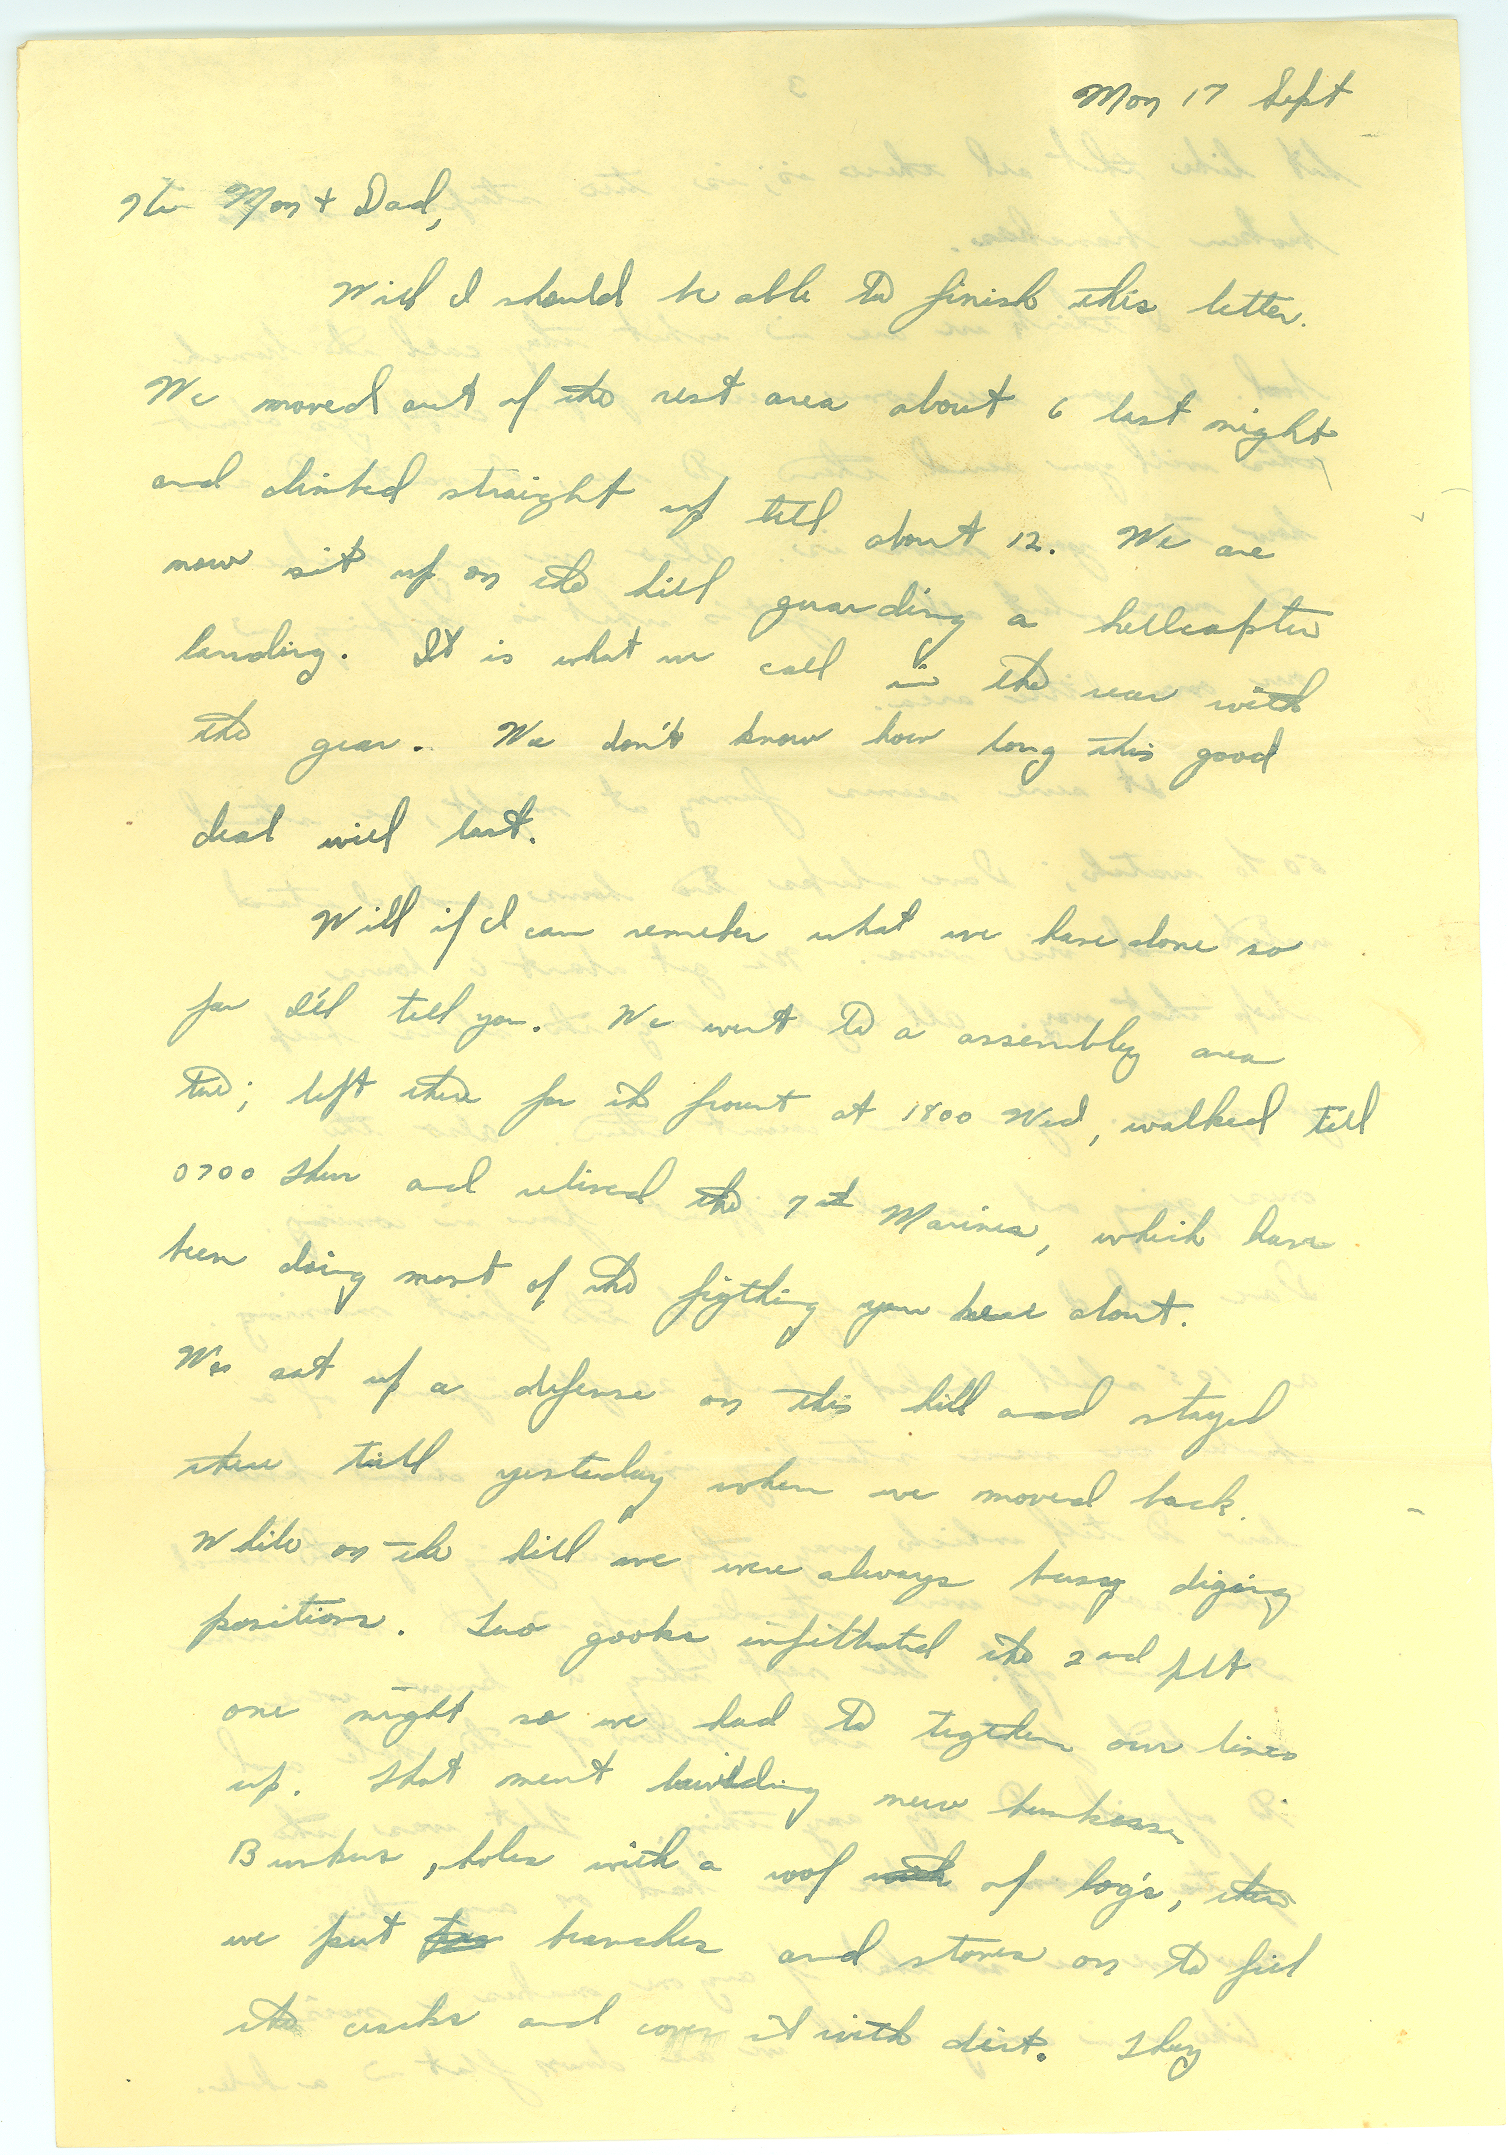 Writing A Letter In Korean Magazine Cover Letter Written On September 17,  1951 By Read To His Mom And Dad While Stationed